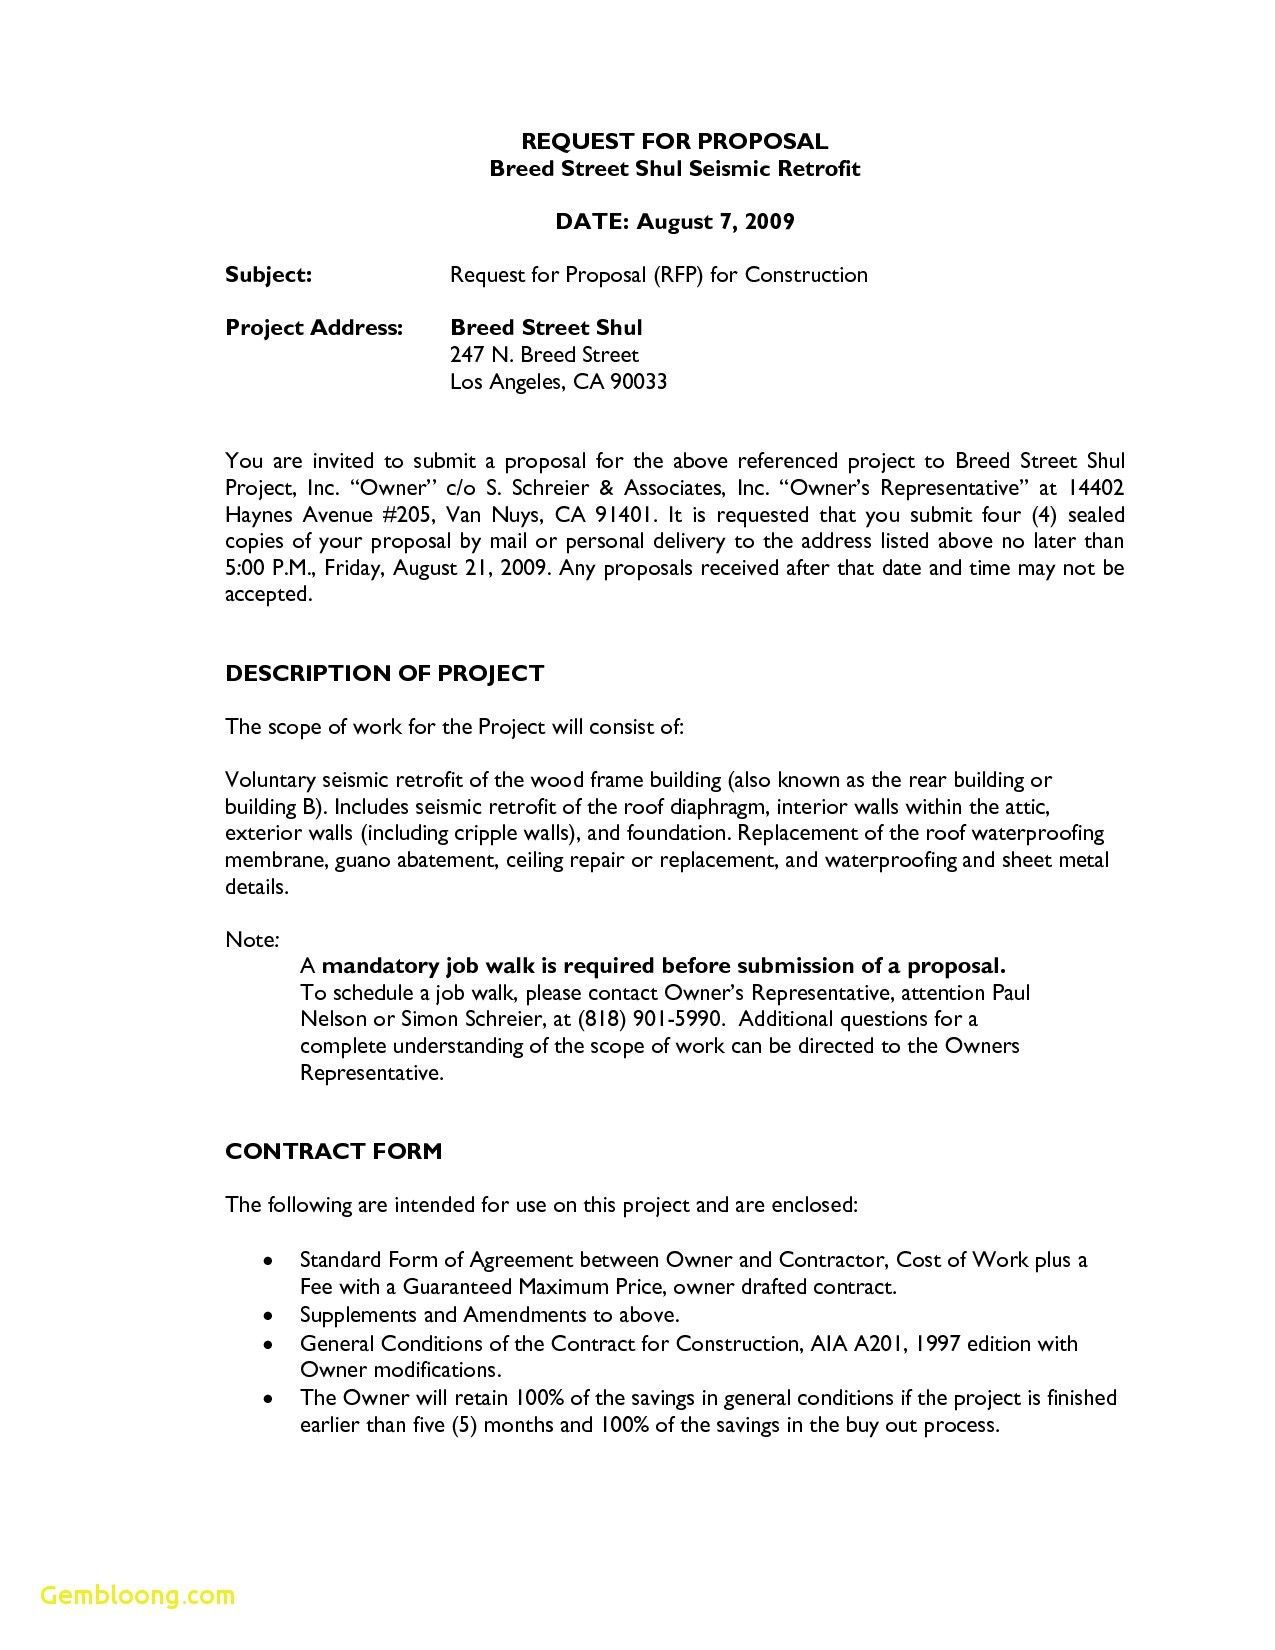 009 Striking Request For Proposal Rfp Template Construction High Resolution Full